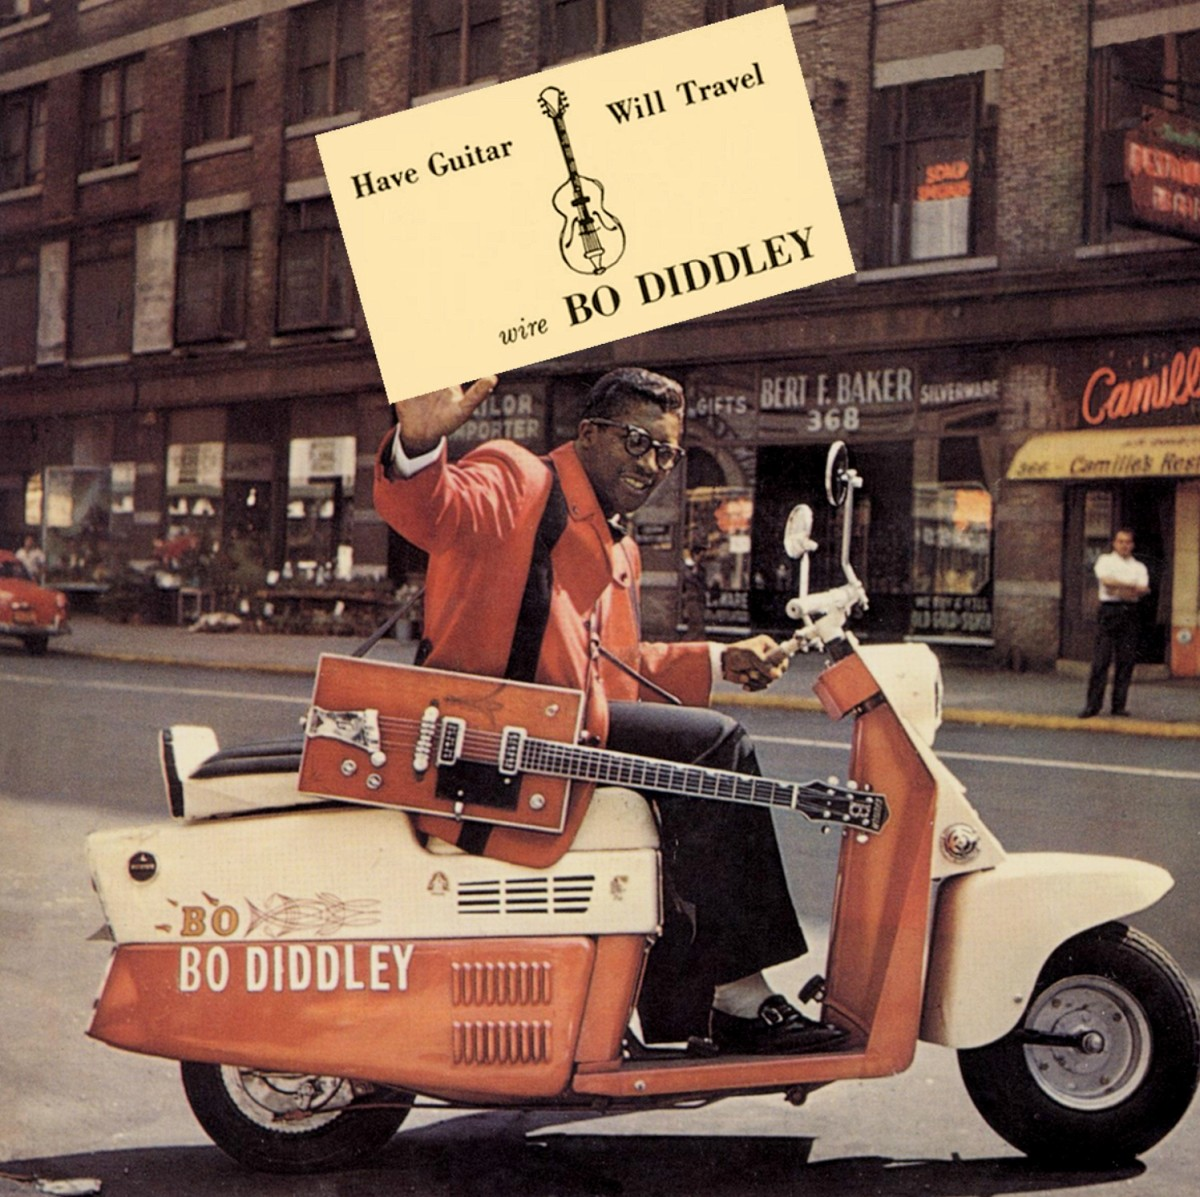 "Bo Diddley ""Have Guitar Will Travel"" Checker Records LP 2974 12"" LP Vinyl Record (1960) US Pressing"